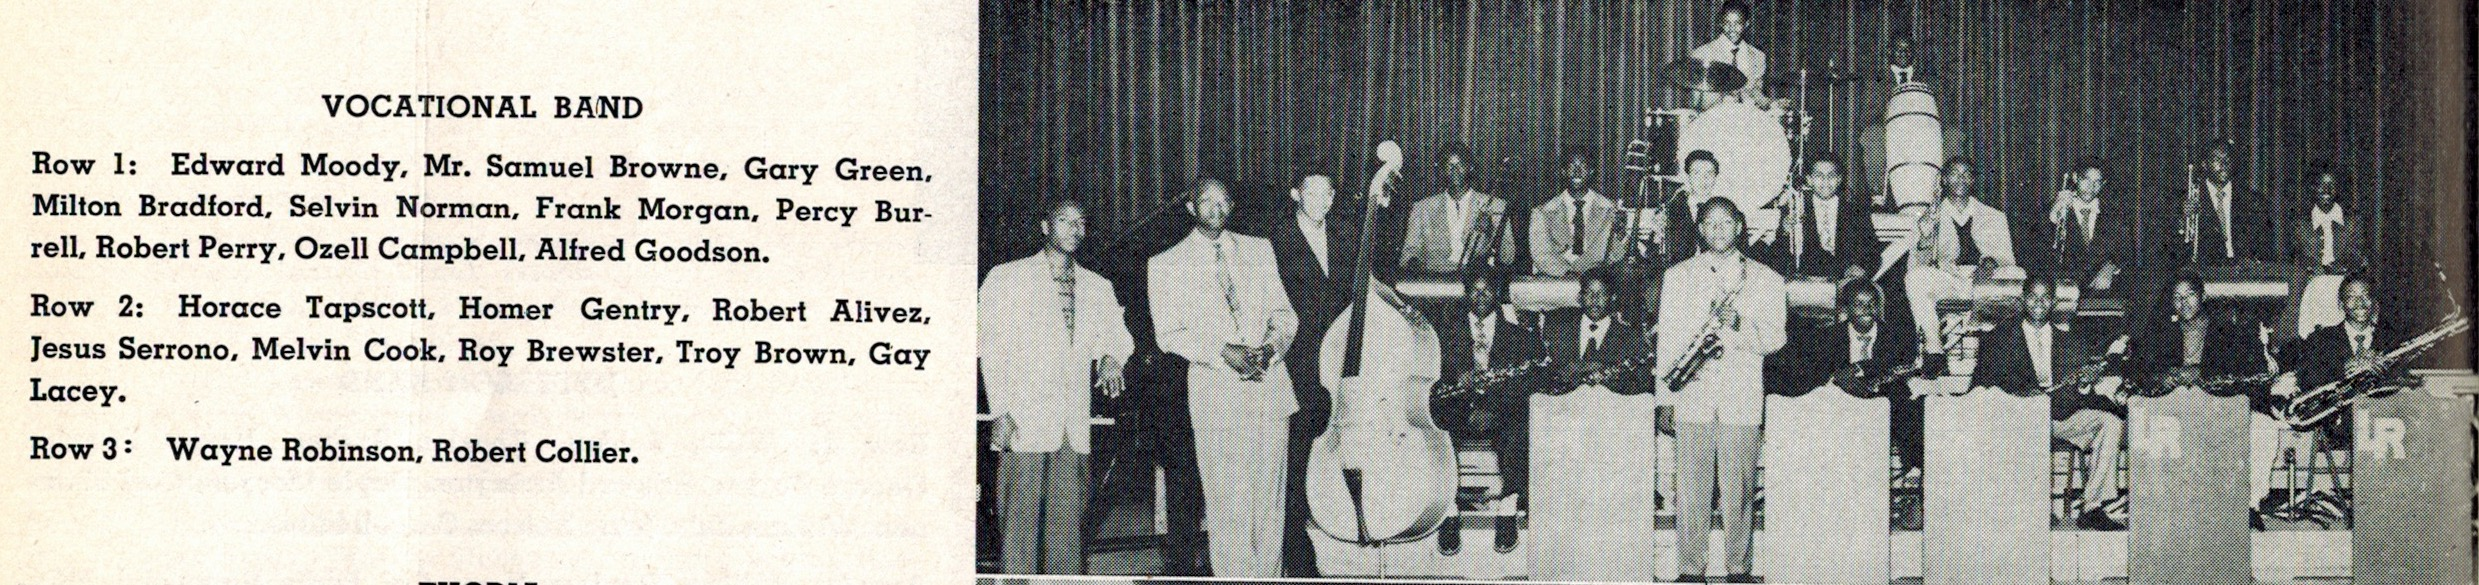 Jefferson High School swing band from the winter of 1951 featuring Samuel Browne, Horace Tapscott on trombones and Frank Morgan on the alto sax. | Courtesy of Steven Isoardi.